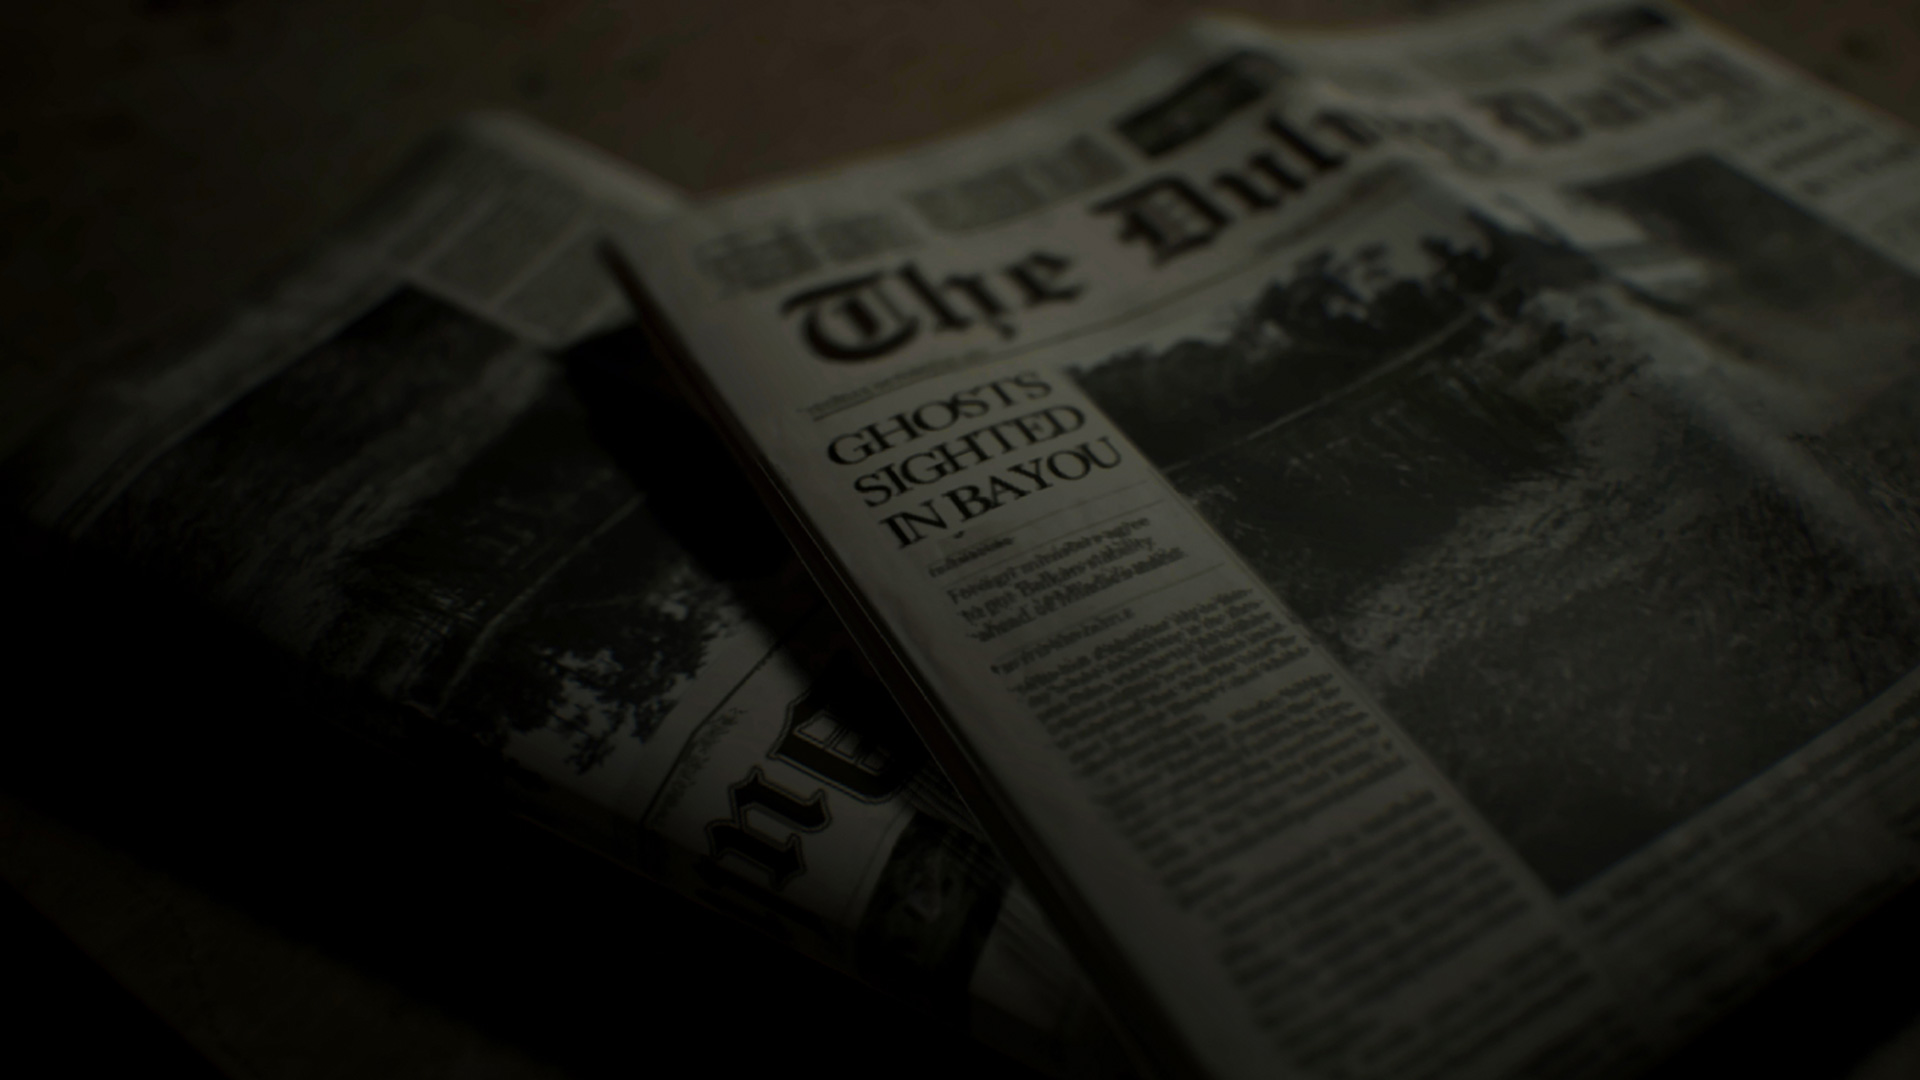 Fichier:Resident Evil 7 - Ghost Sighting newspaper.jpg